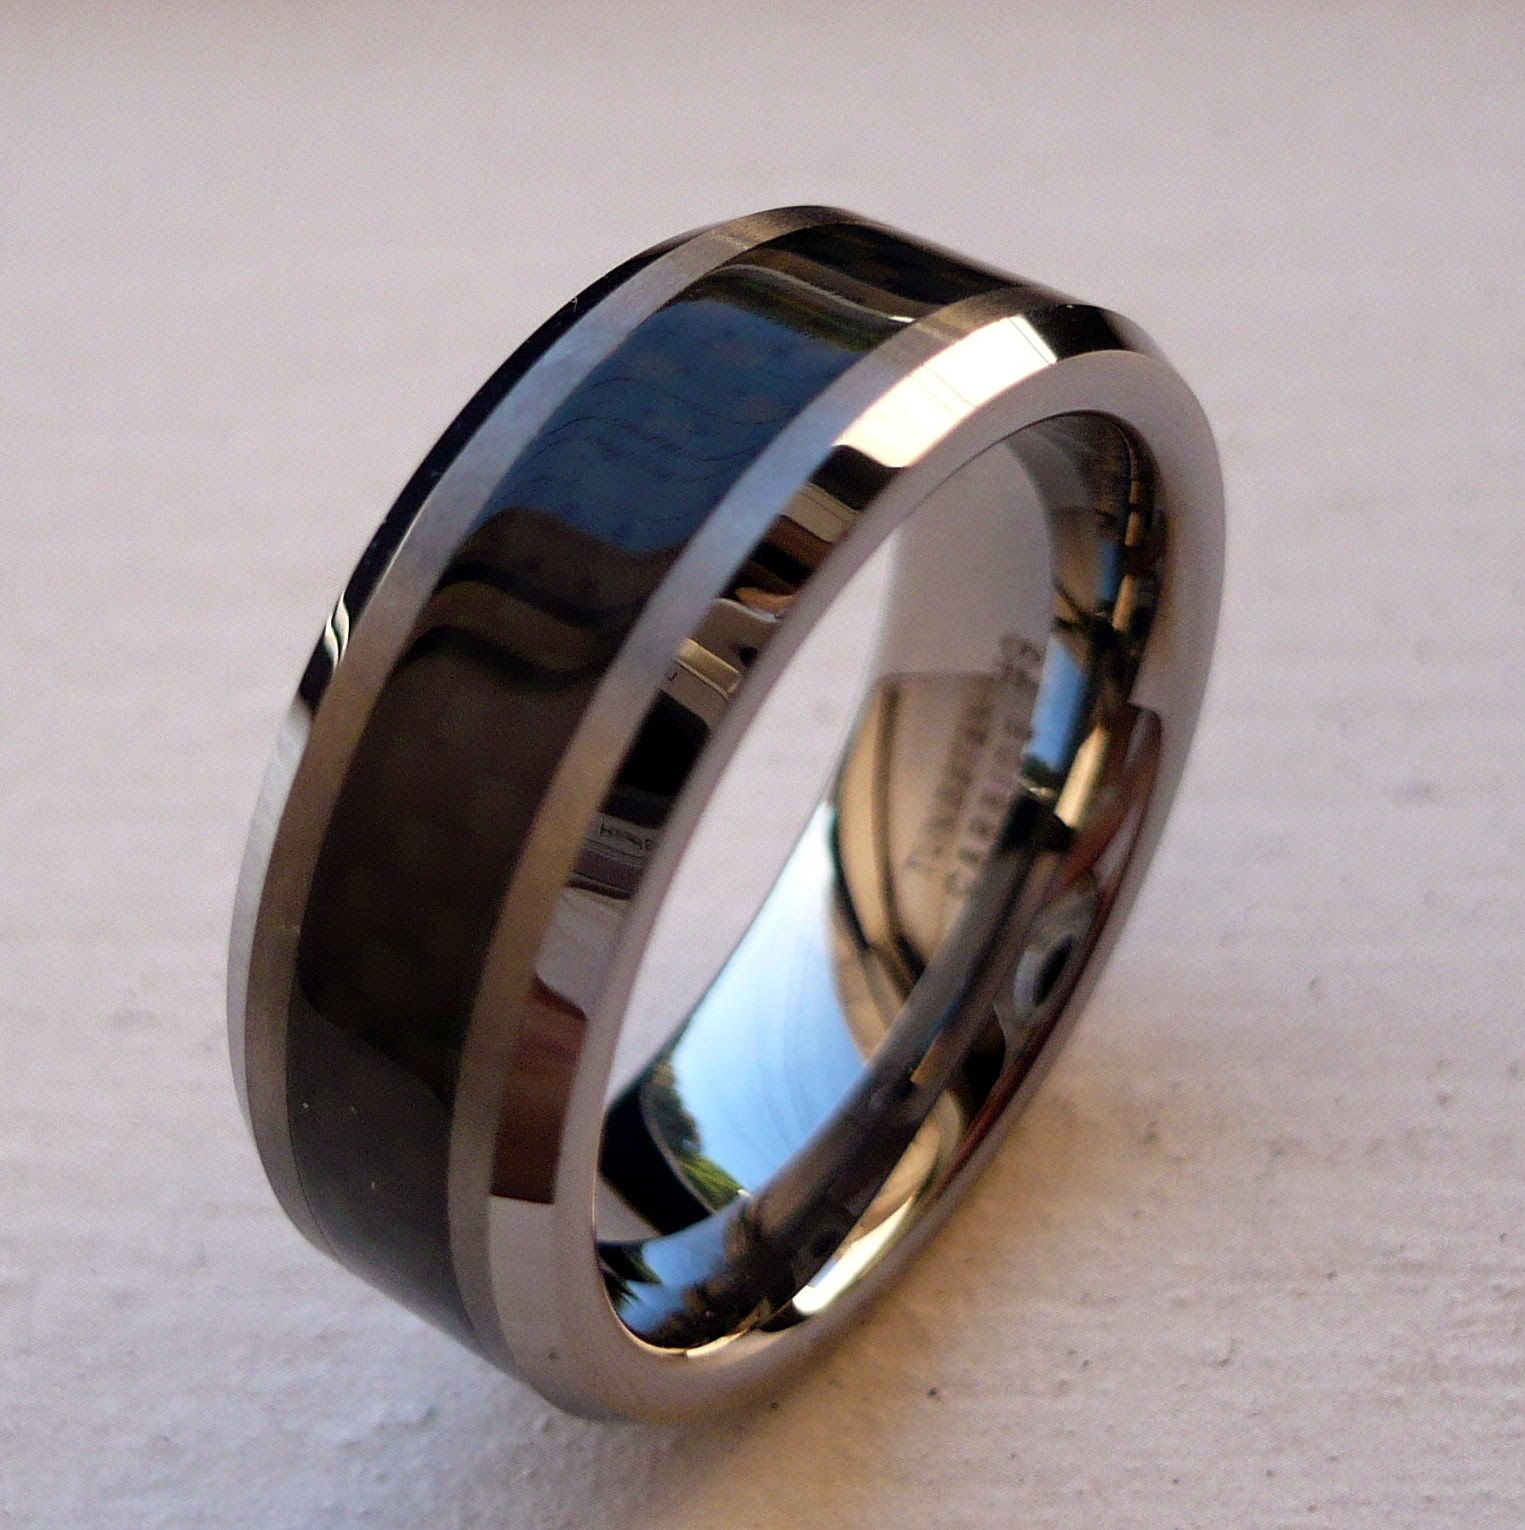 black tungsten wedding bands pick inspiration and ideas here pickyeaters. Black Bedroom Furniture Sets. Home Design Ideas